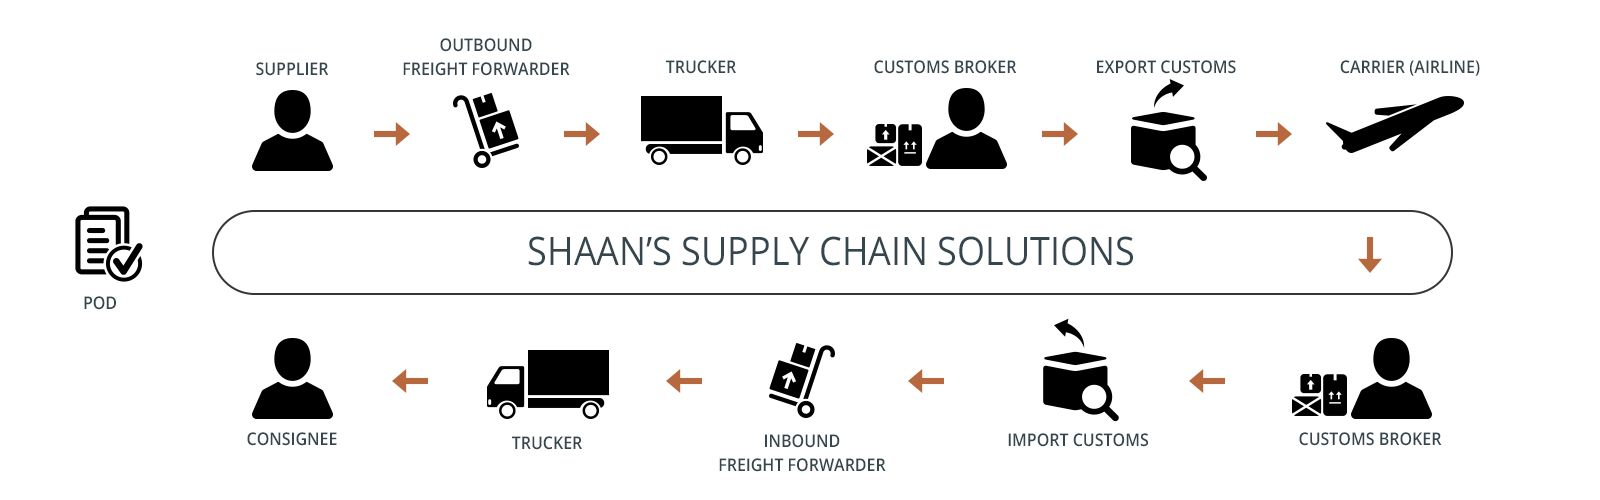 Shaan's Supply Chain Solutions